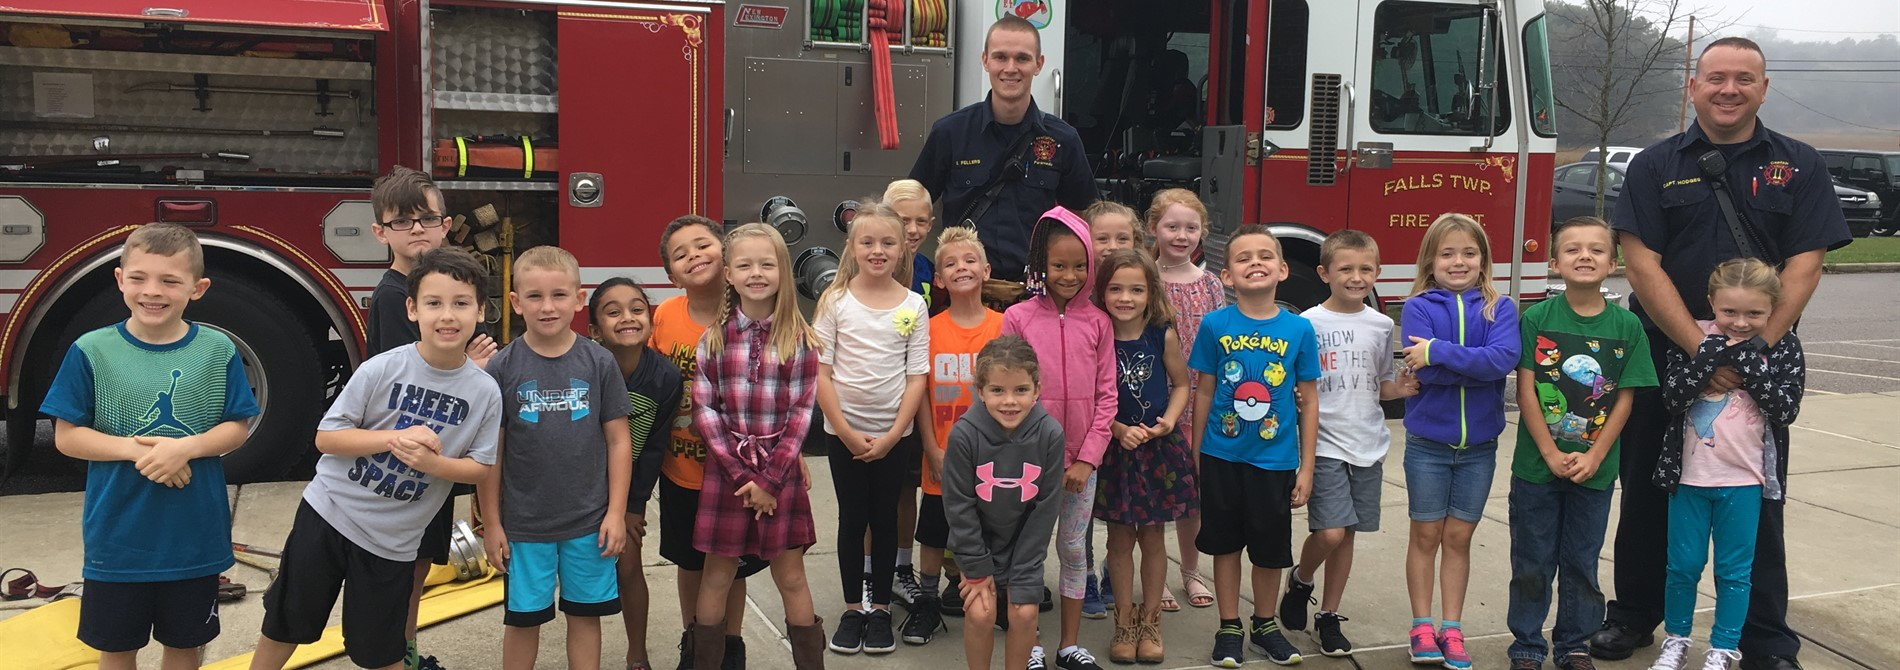 A Visit from Falls Township Fire Department